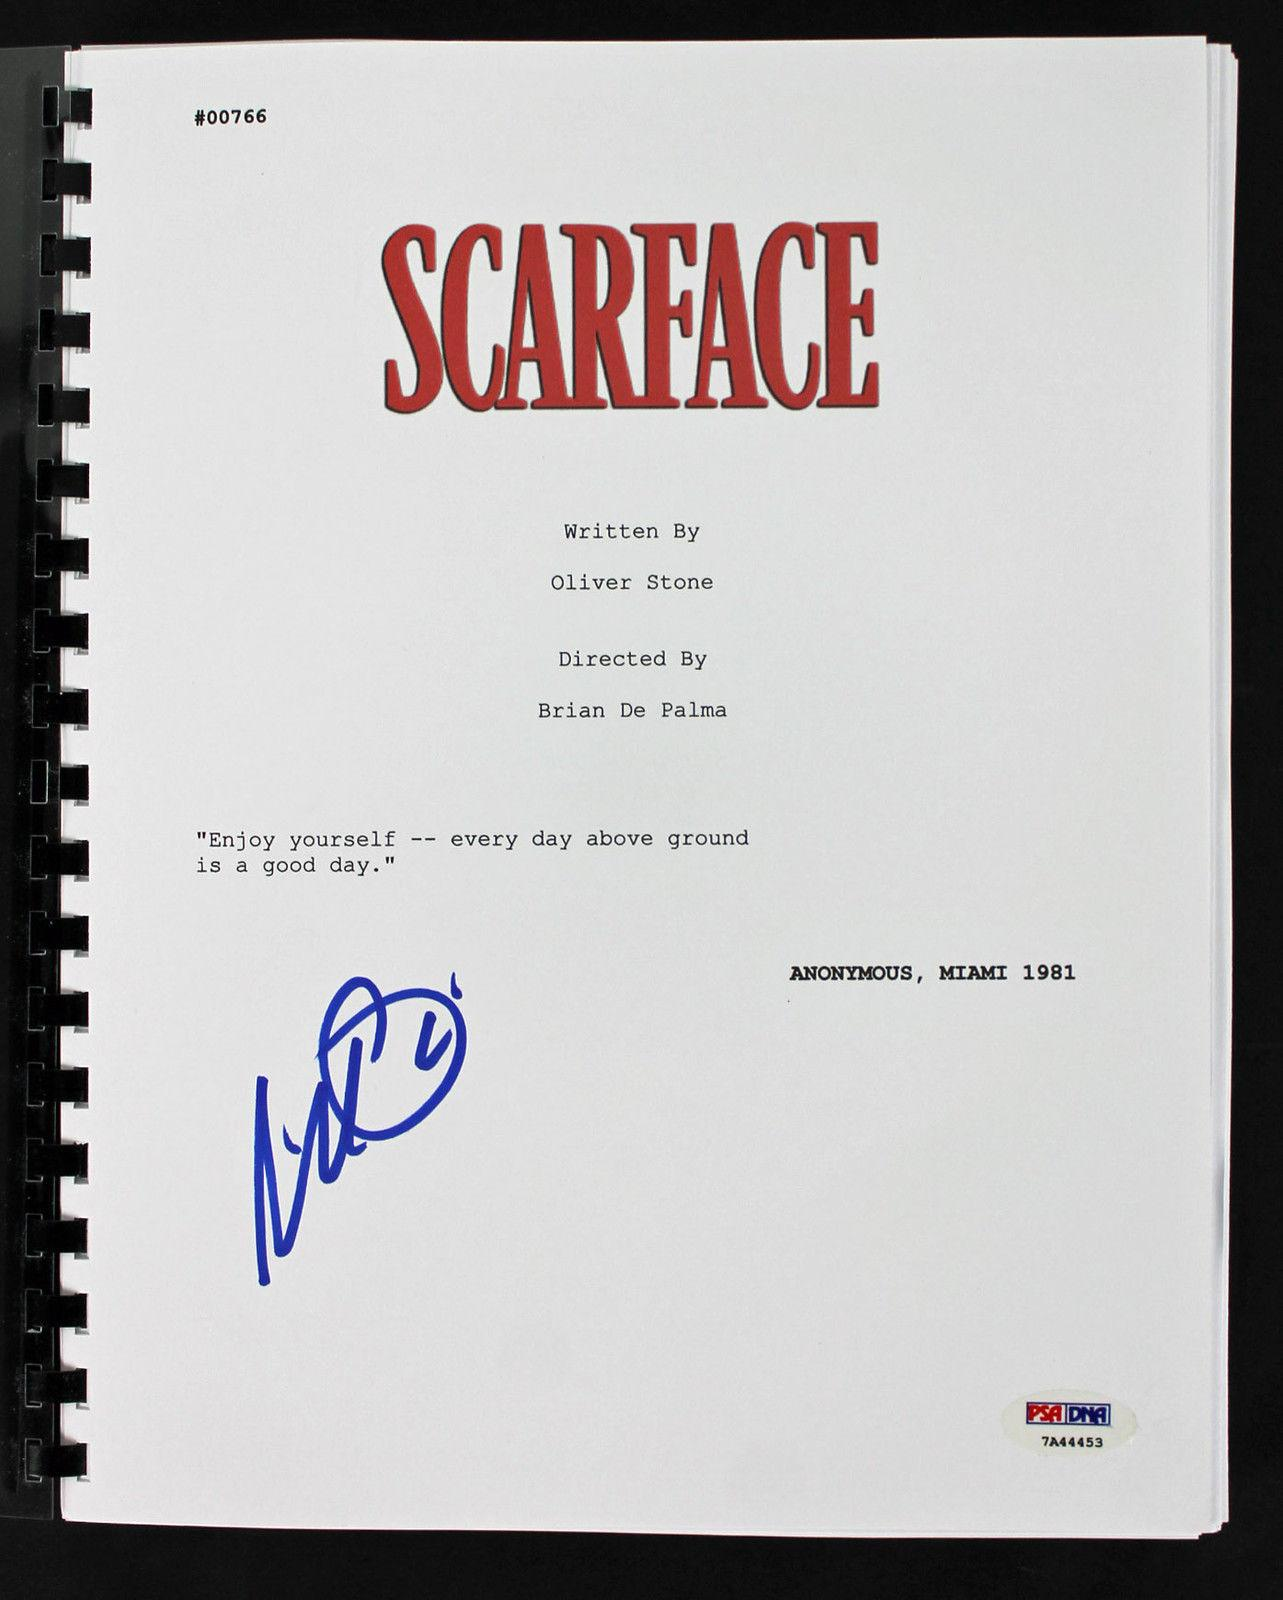 Al Pacino Signed Scarface Movie Script PSA/DNA #7A44453